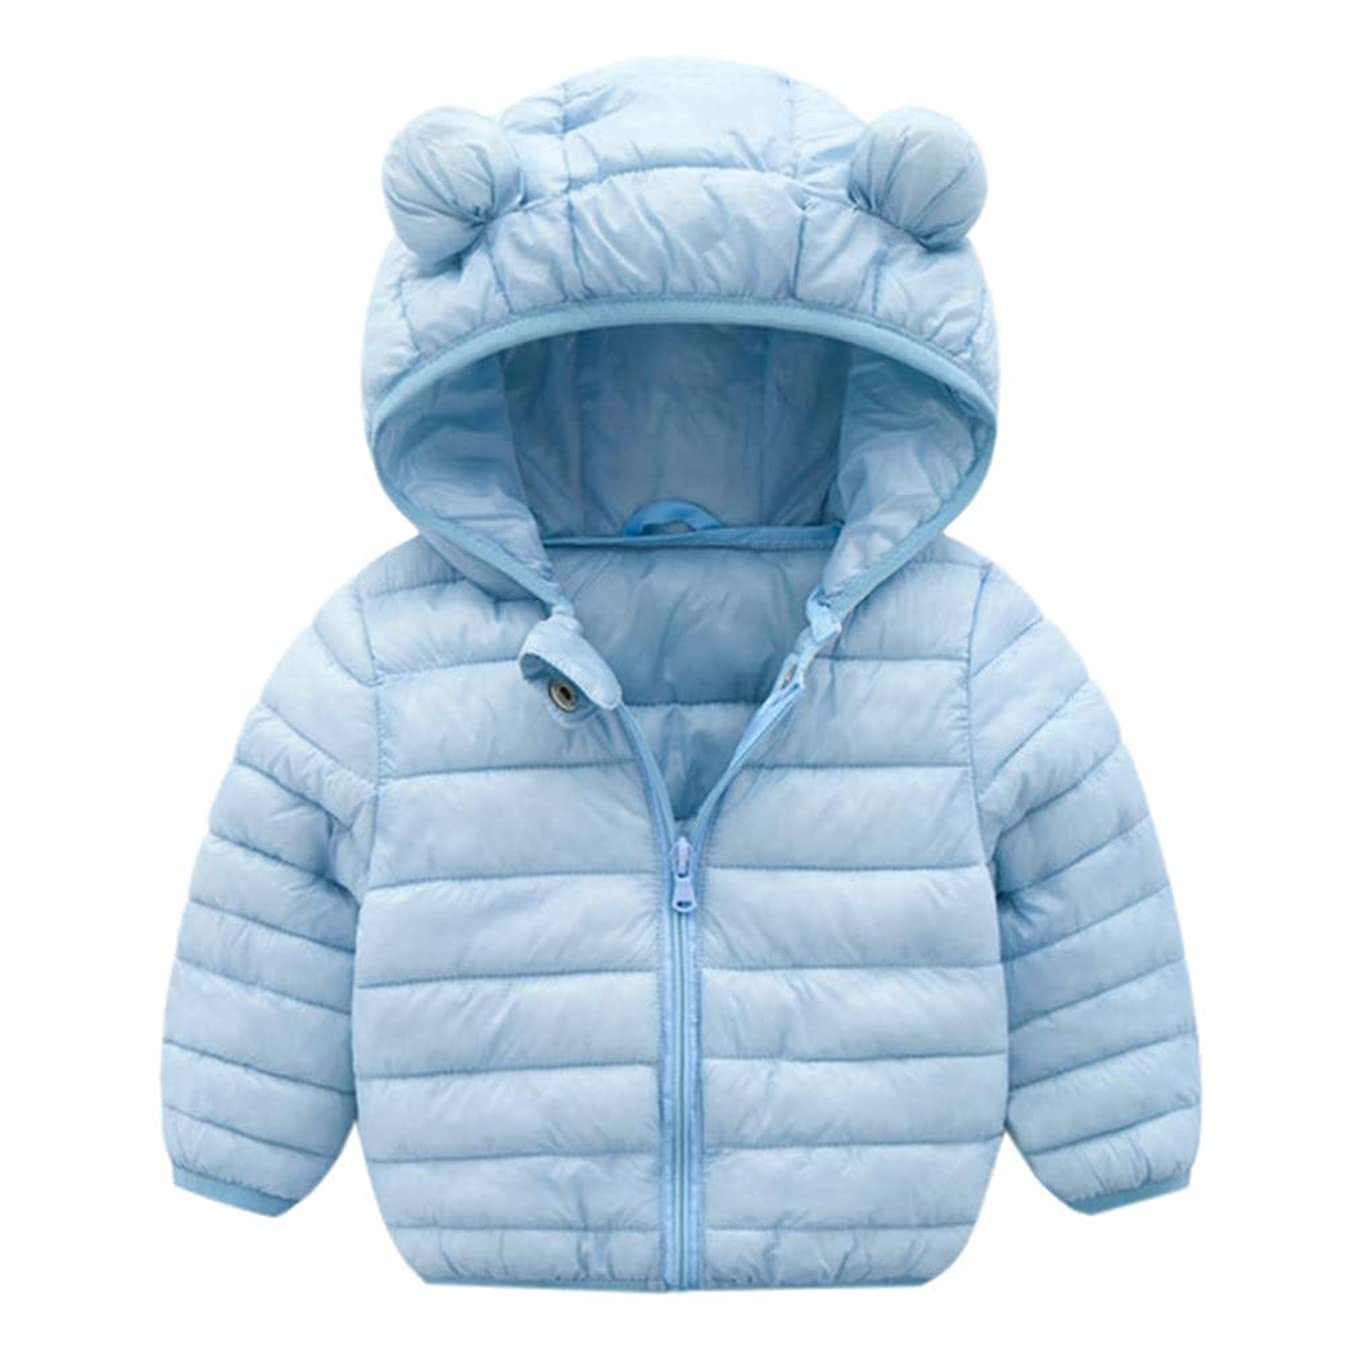 WARMSHOP Baby Hooded Down Coat for 0-4T, ?? Toddler Boys Girls Lightweight Soft Winter Warm Jacket Solid Thick Outwear Cloth